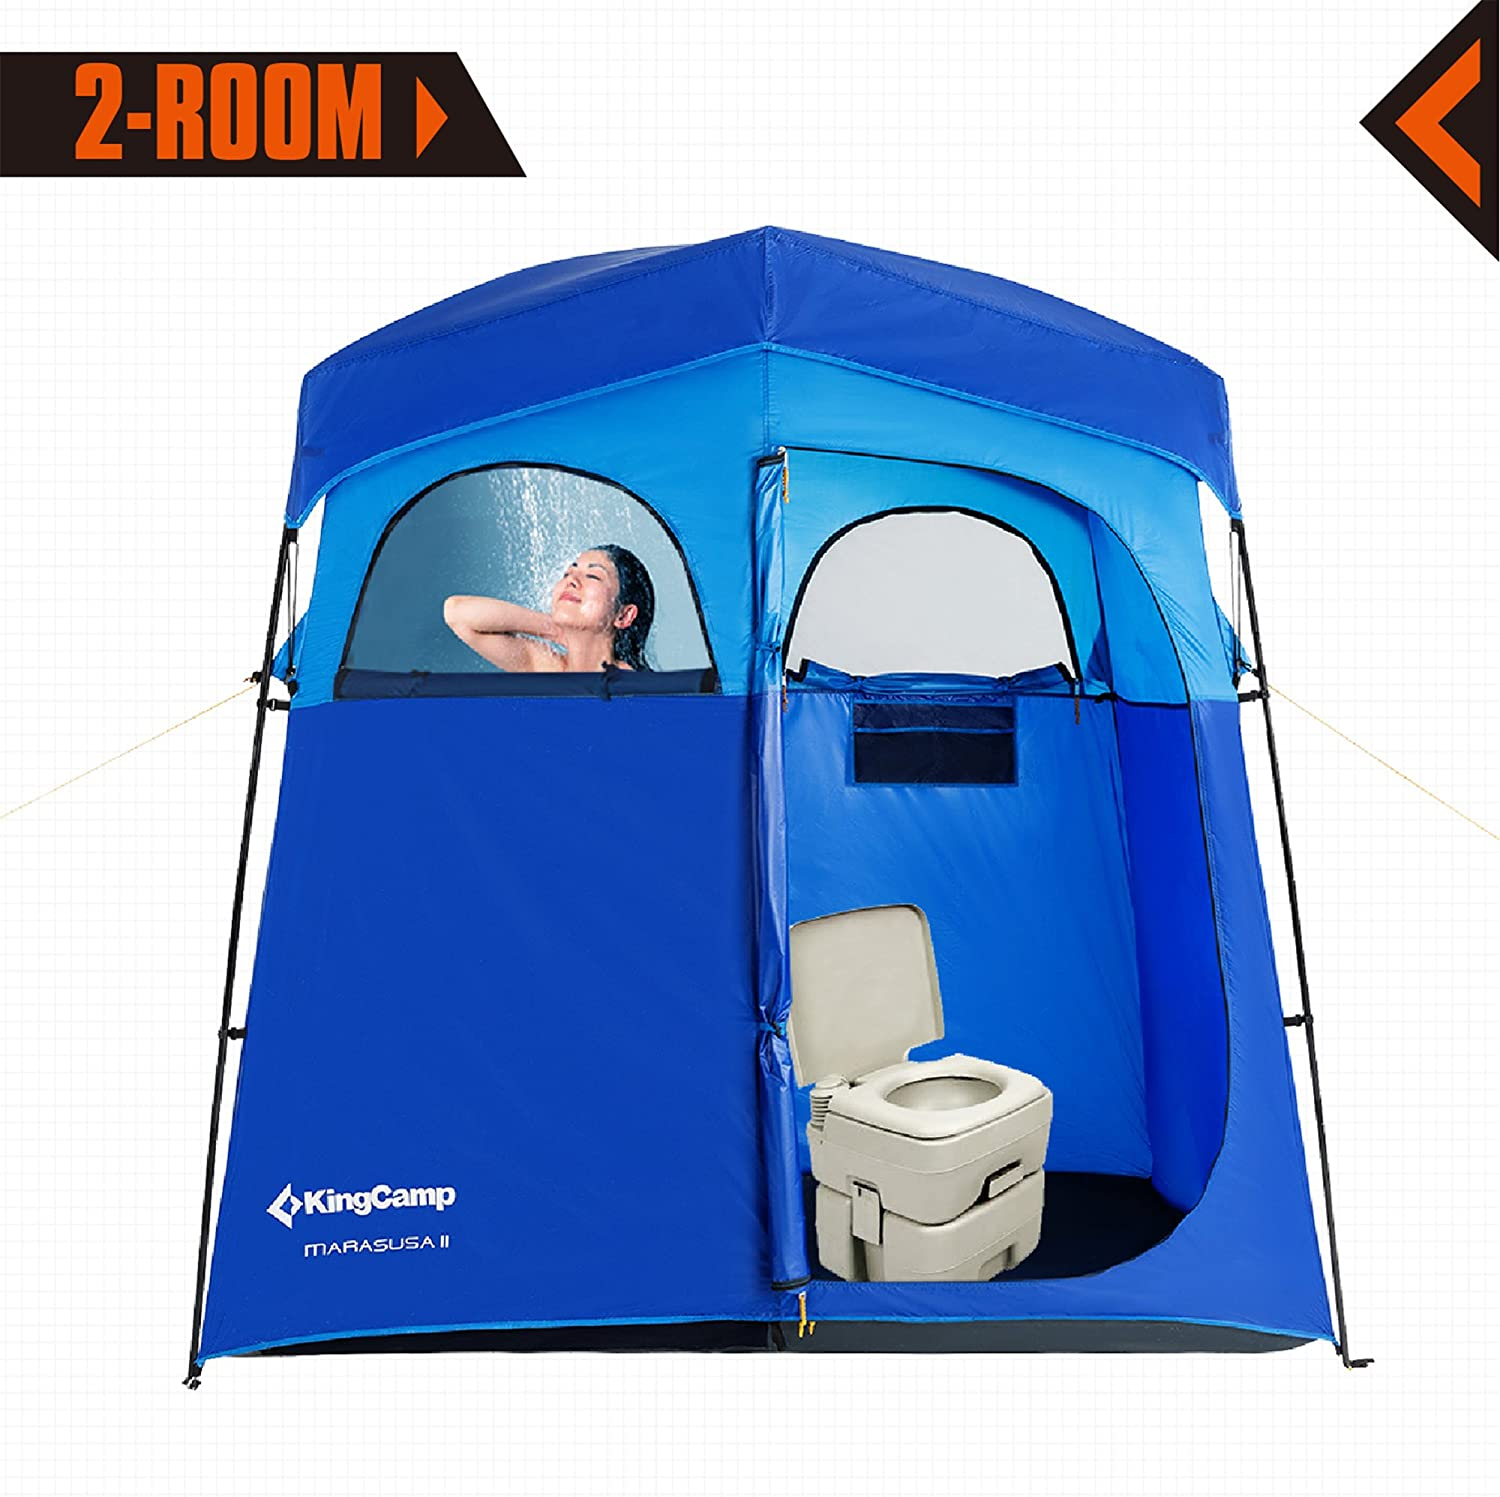 KingCamp 2 Room Non Instant Easy Up Portable Dressing